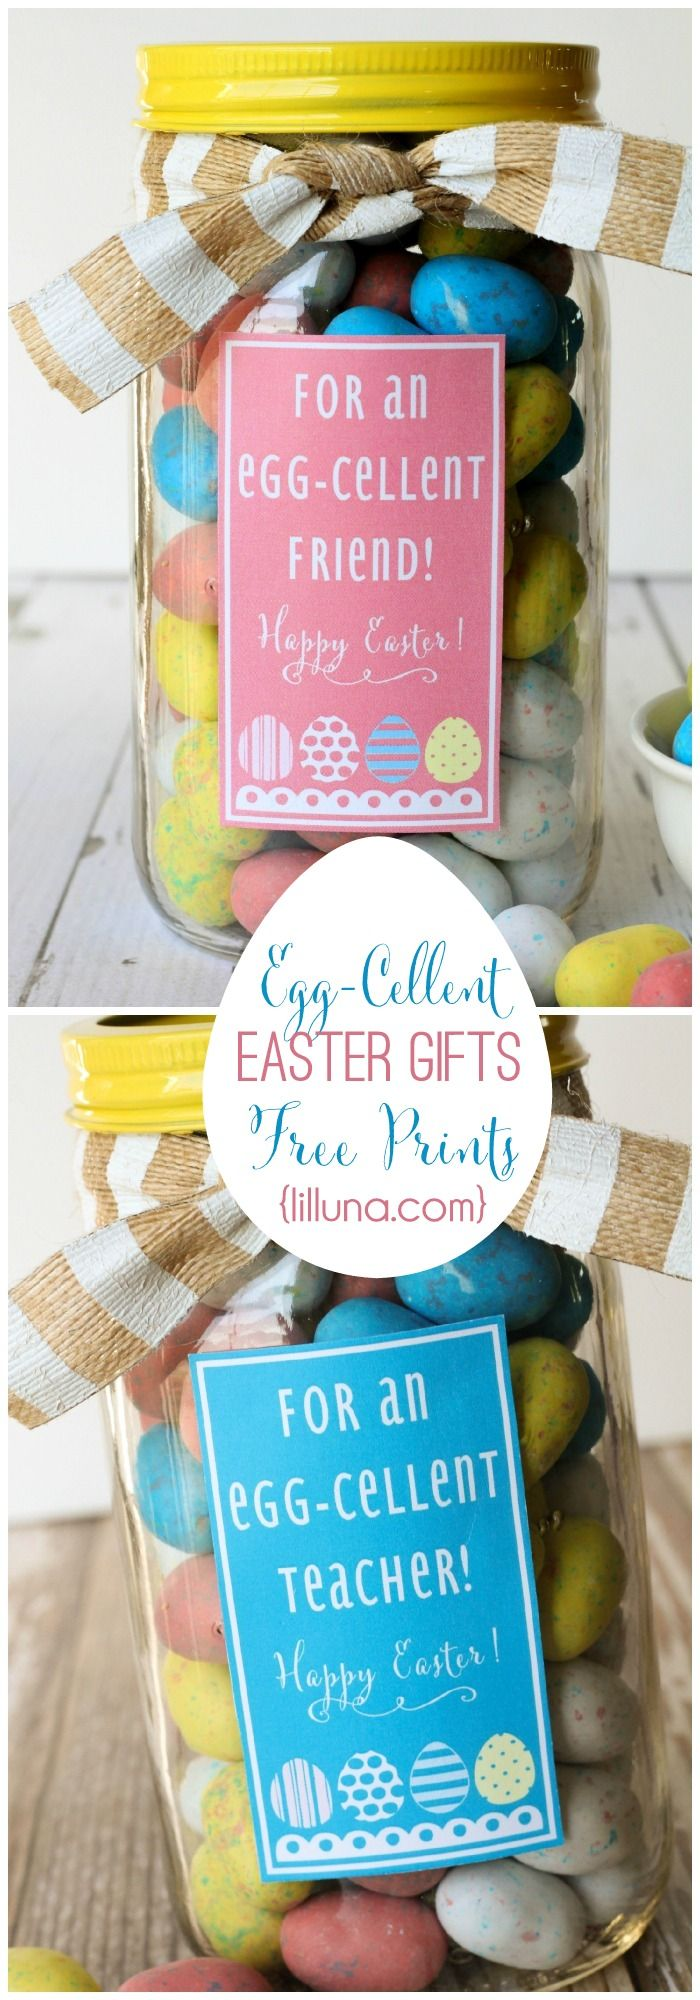 Egg cellent easter gift ideas cute and inexpensive free prints egg cellent easter gift ideas cute and inexpensive free prints on lilluna negle Images